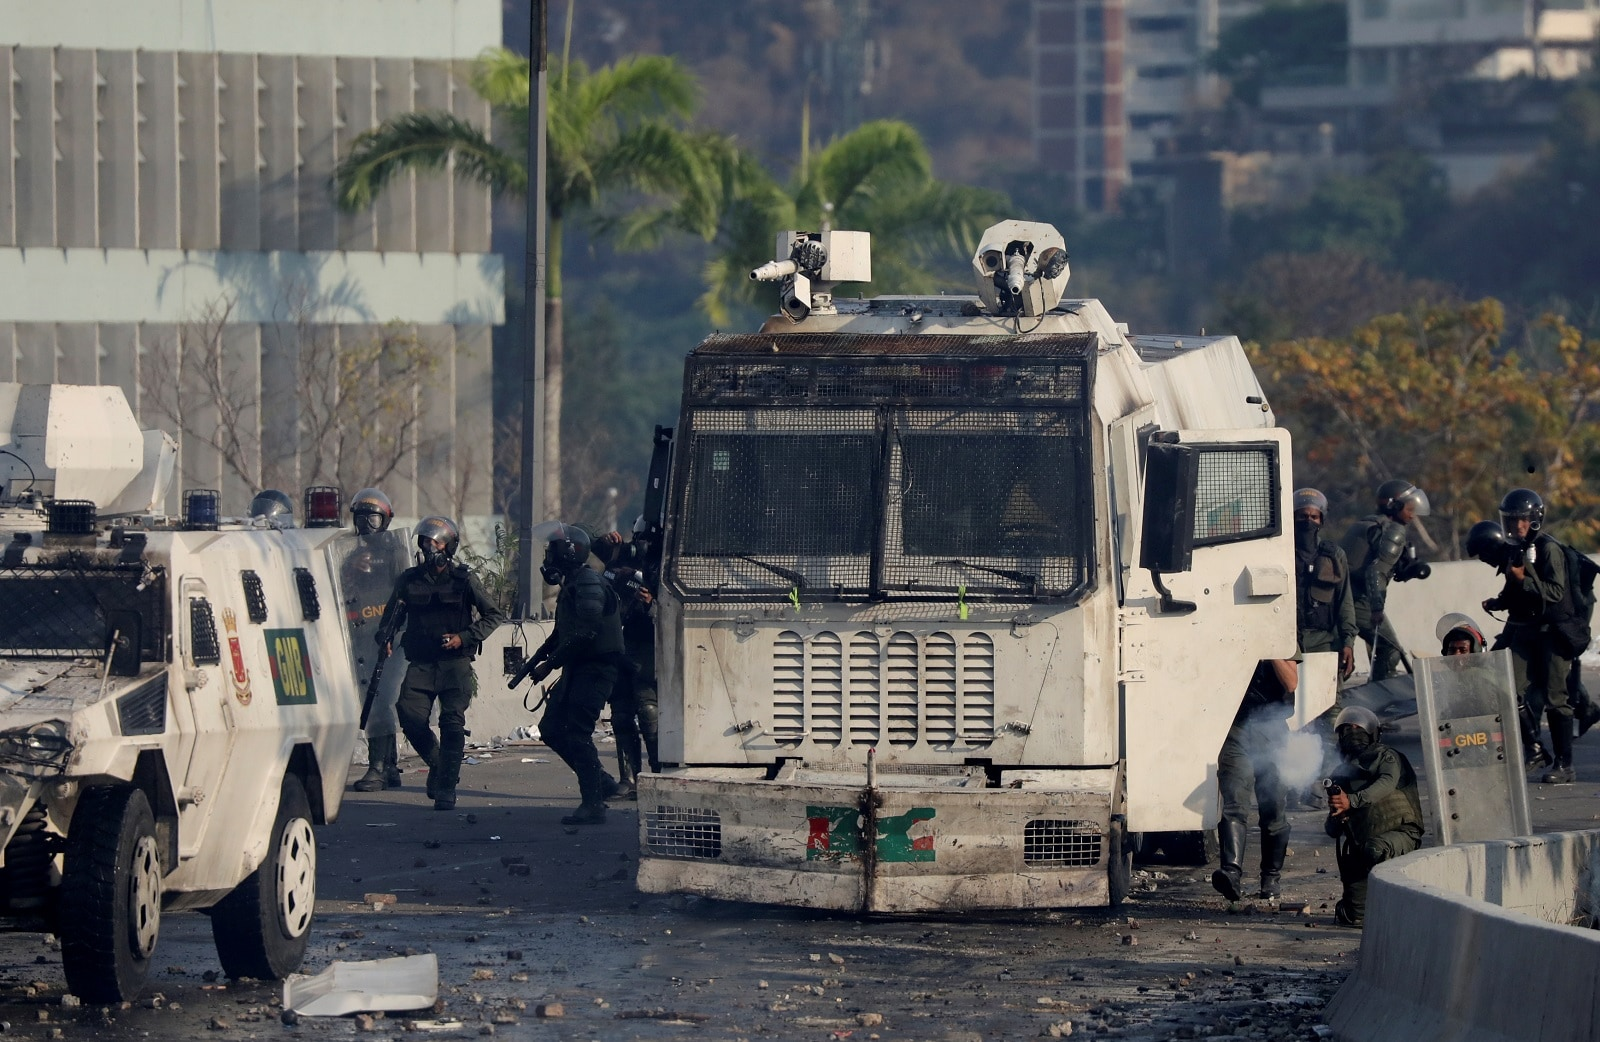 A member of security forces fires his weapon during clashes with demonstrators in Caracas, Venezuela May 1, 2019. REUTERS/Manaure Quintero